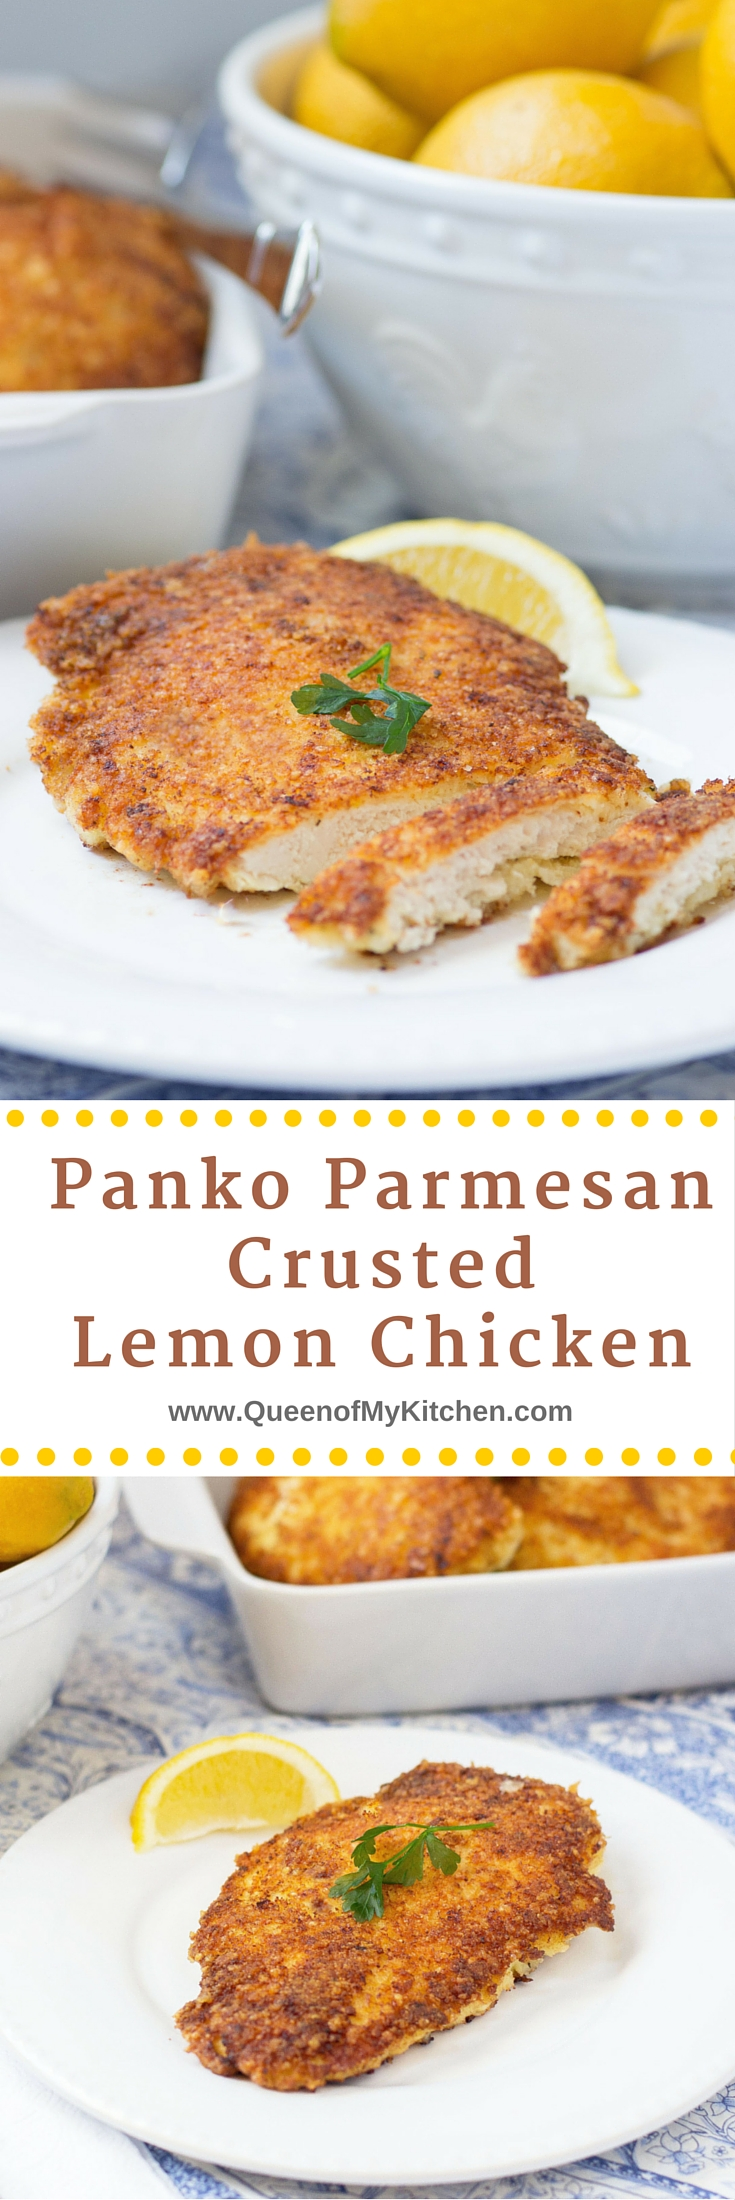 Parmesan Crusted Chicken Recipe Panko Parmesan Crusted Lemon Chicken  Queen Of My Kitchen